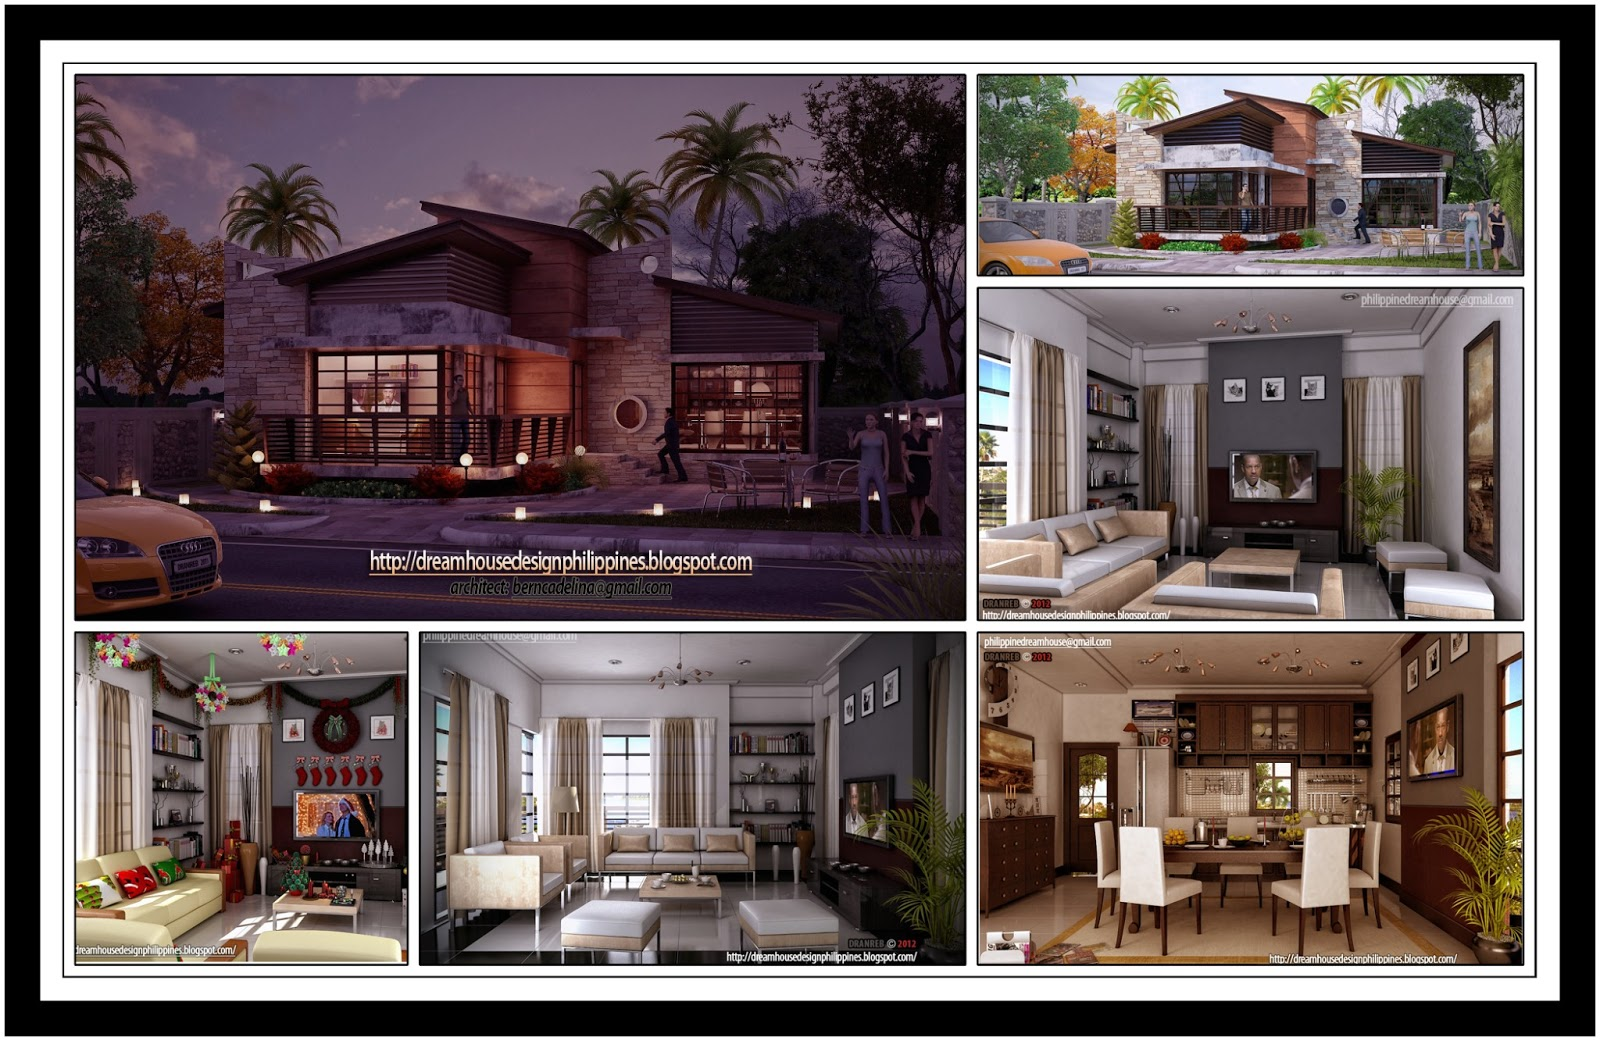 Philippine dream house design post modern house 2 updates for Modern architecture house design philippines